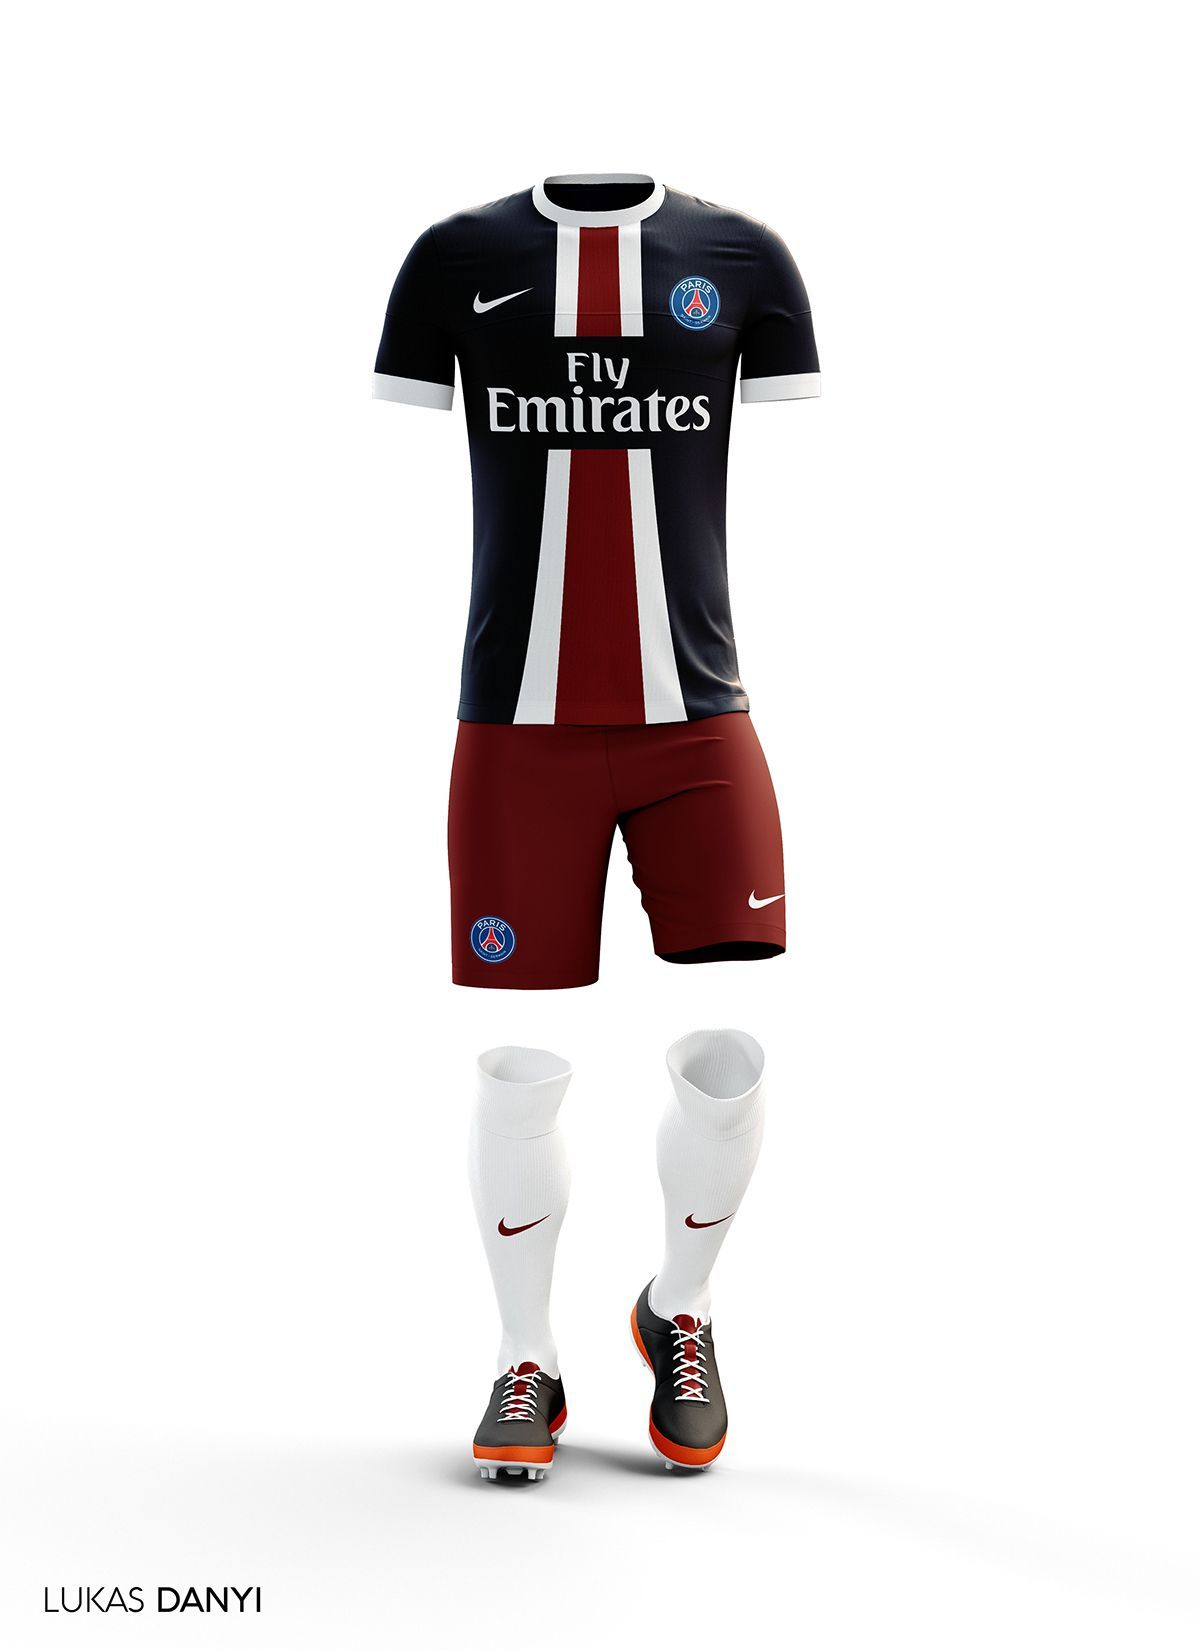 aa28a36c80290 I m made some football soccer kits of famous football clubs ...